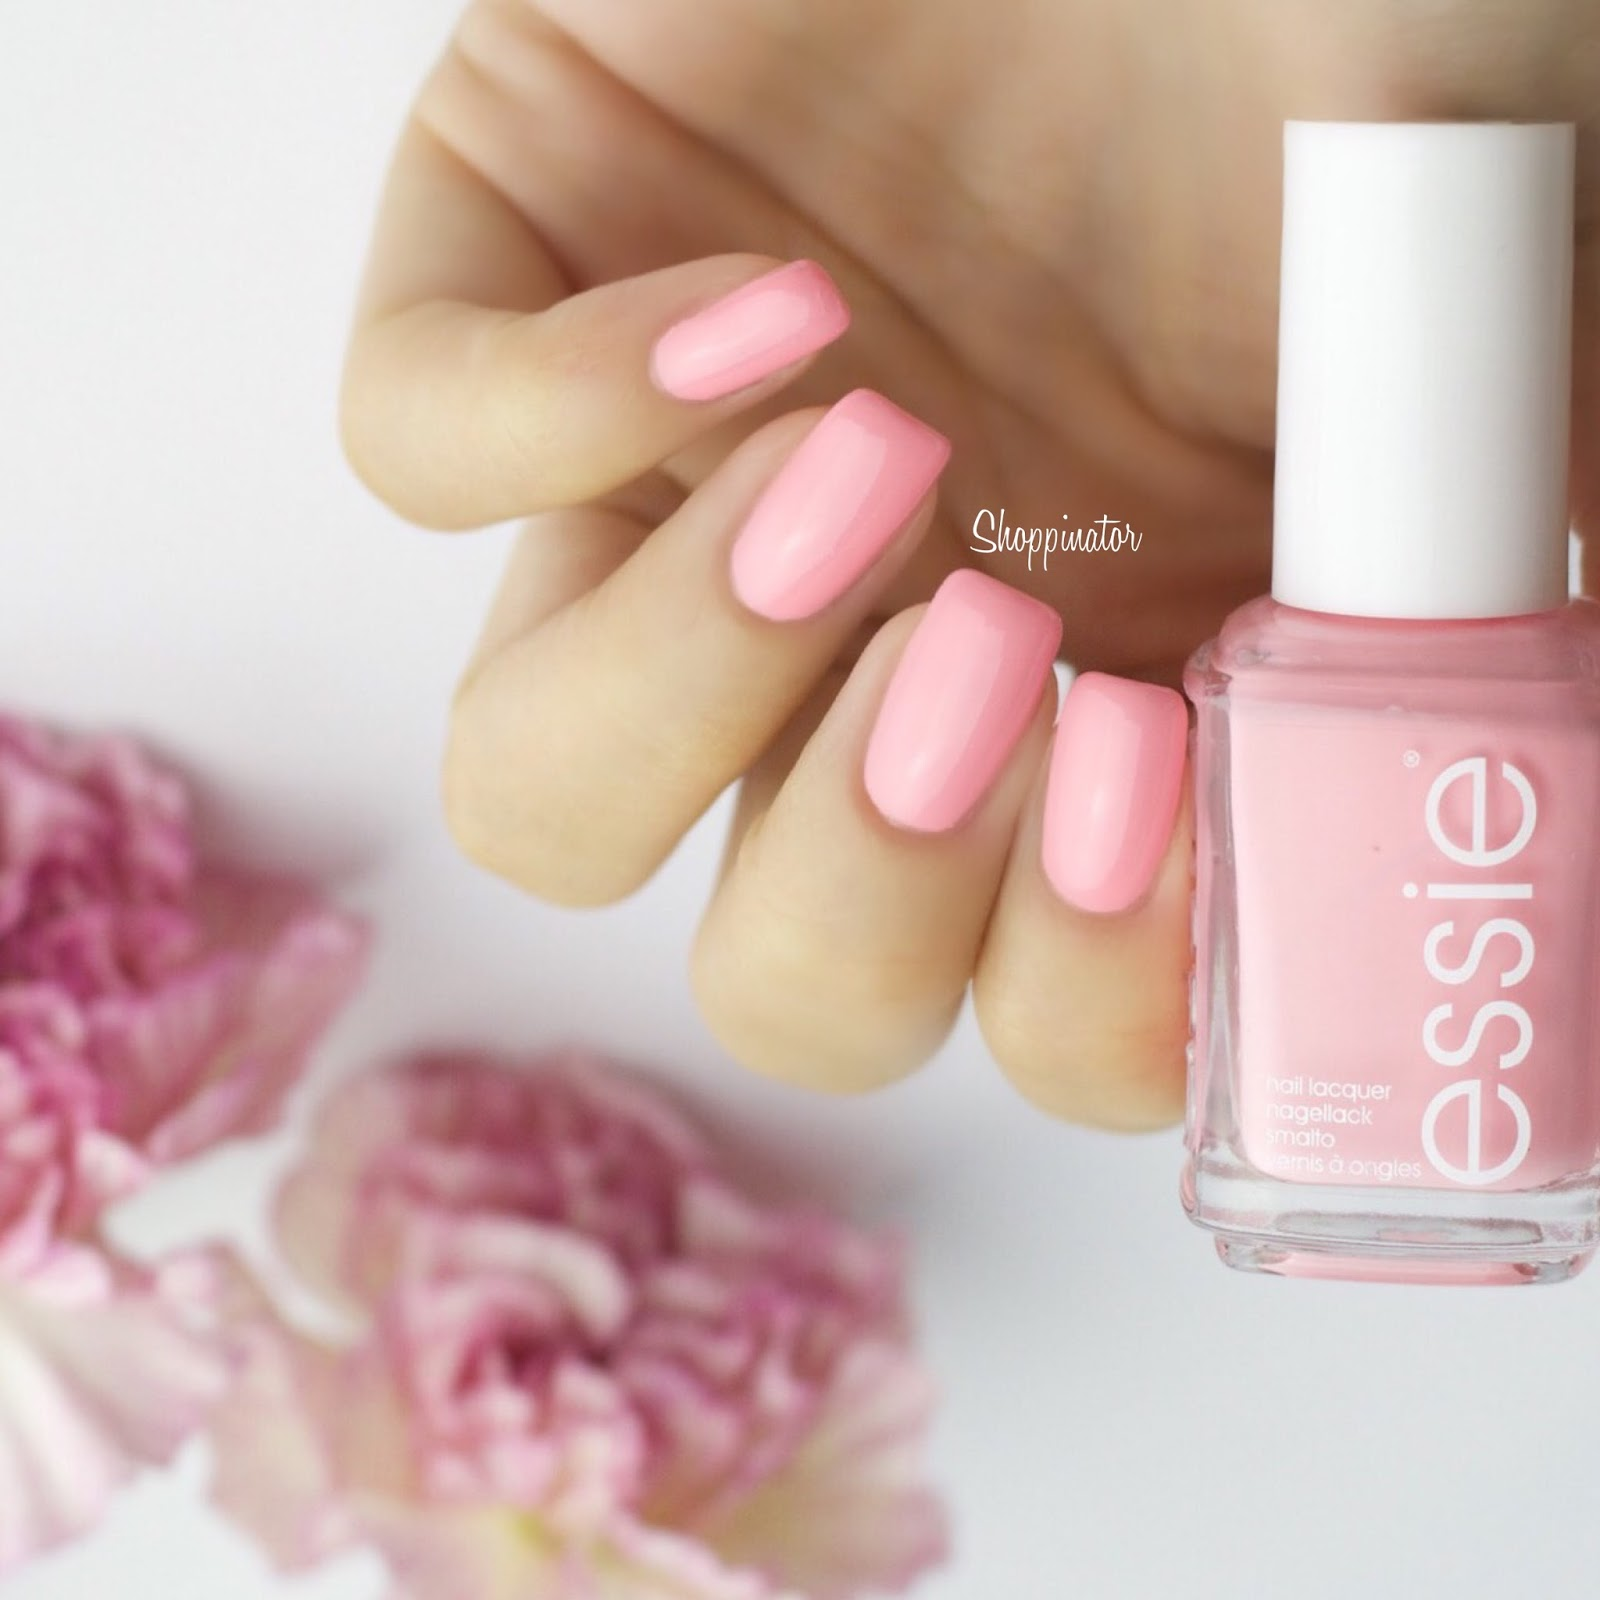 Shoppinator-Essie-Essieliebe-Neon-Groove-is-in-the-heart-rosa-pink-Nagellack-Lack-Neonrosa-2015-Sommer-LE-limitiert-Make-some-noise-lackiert-Swatch-Review-Swatches